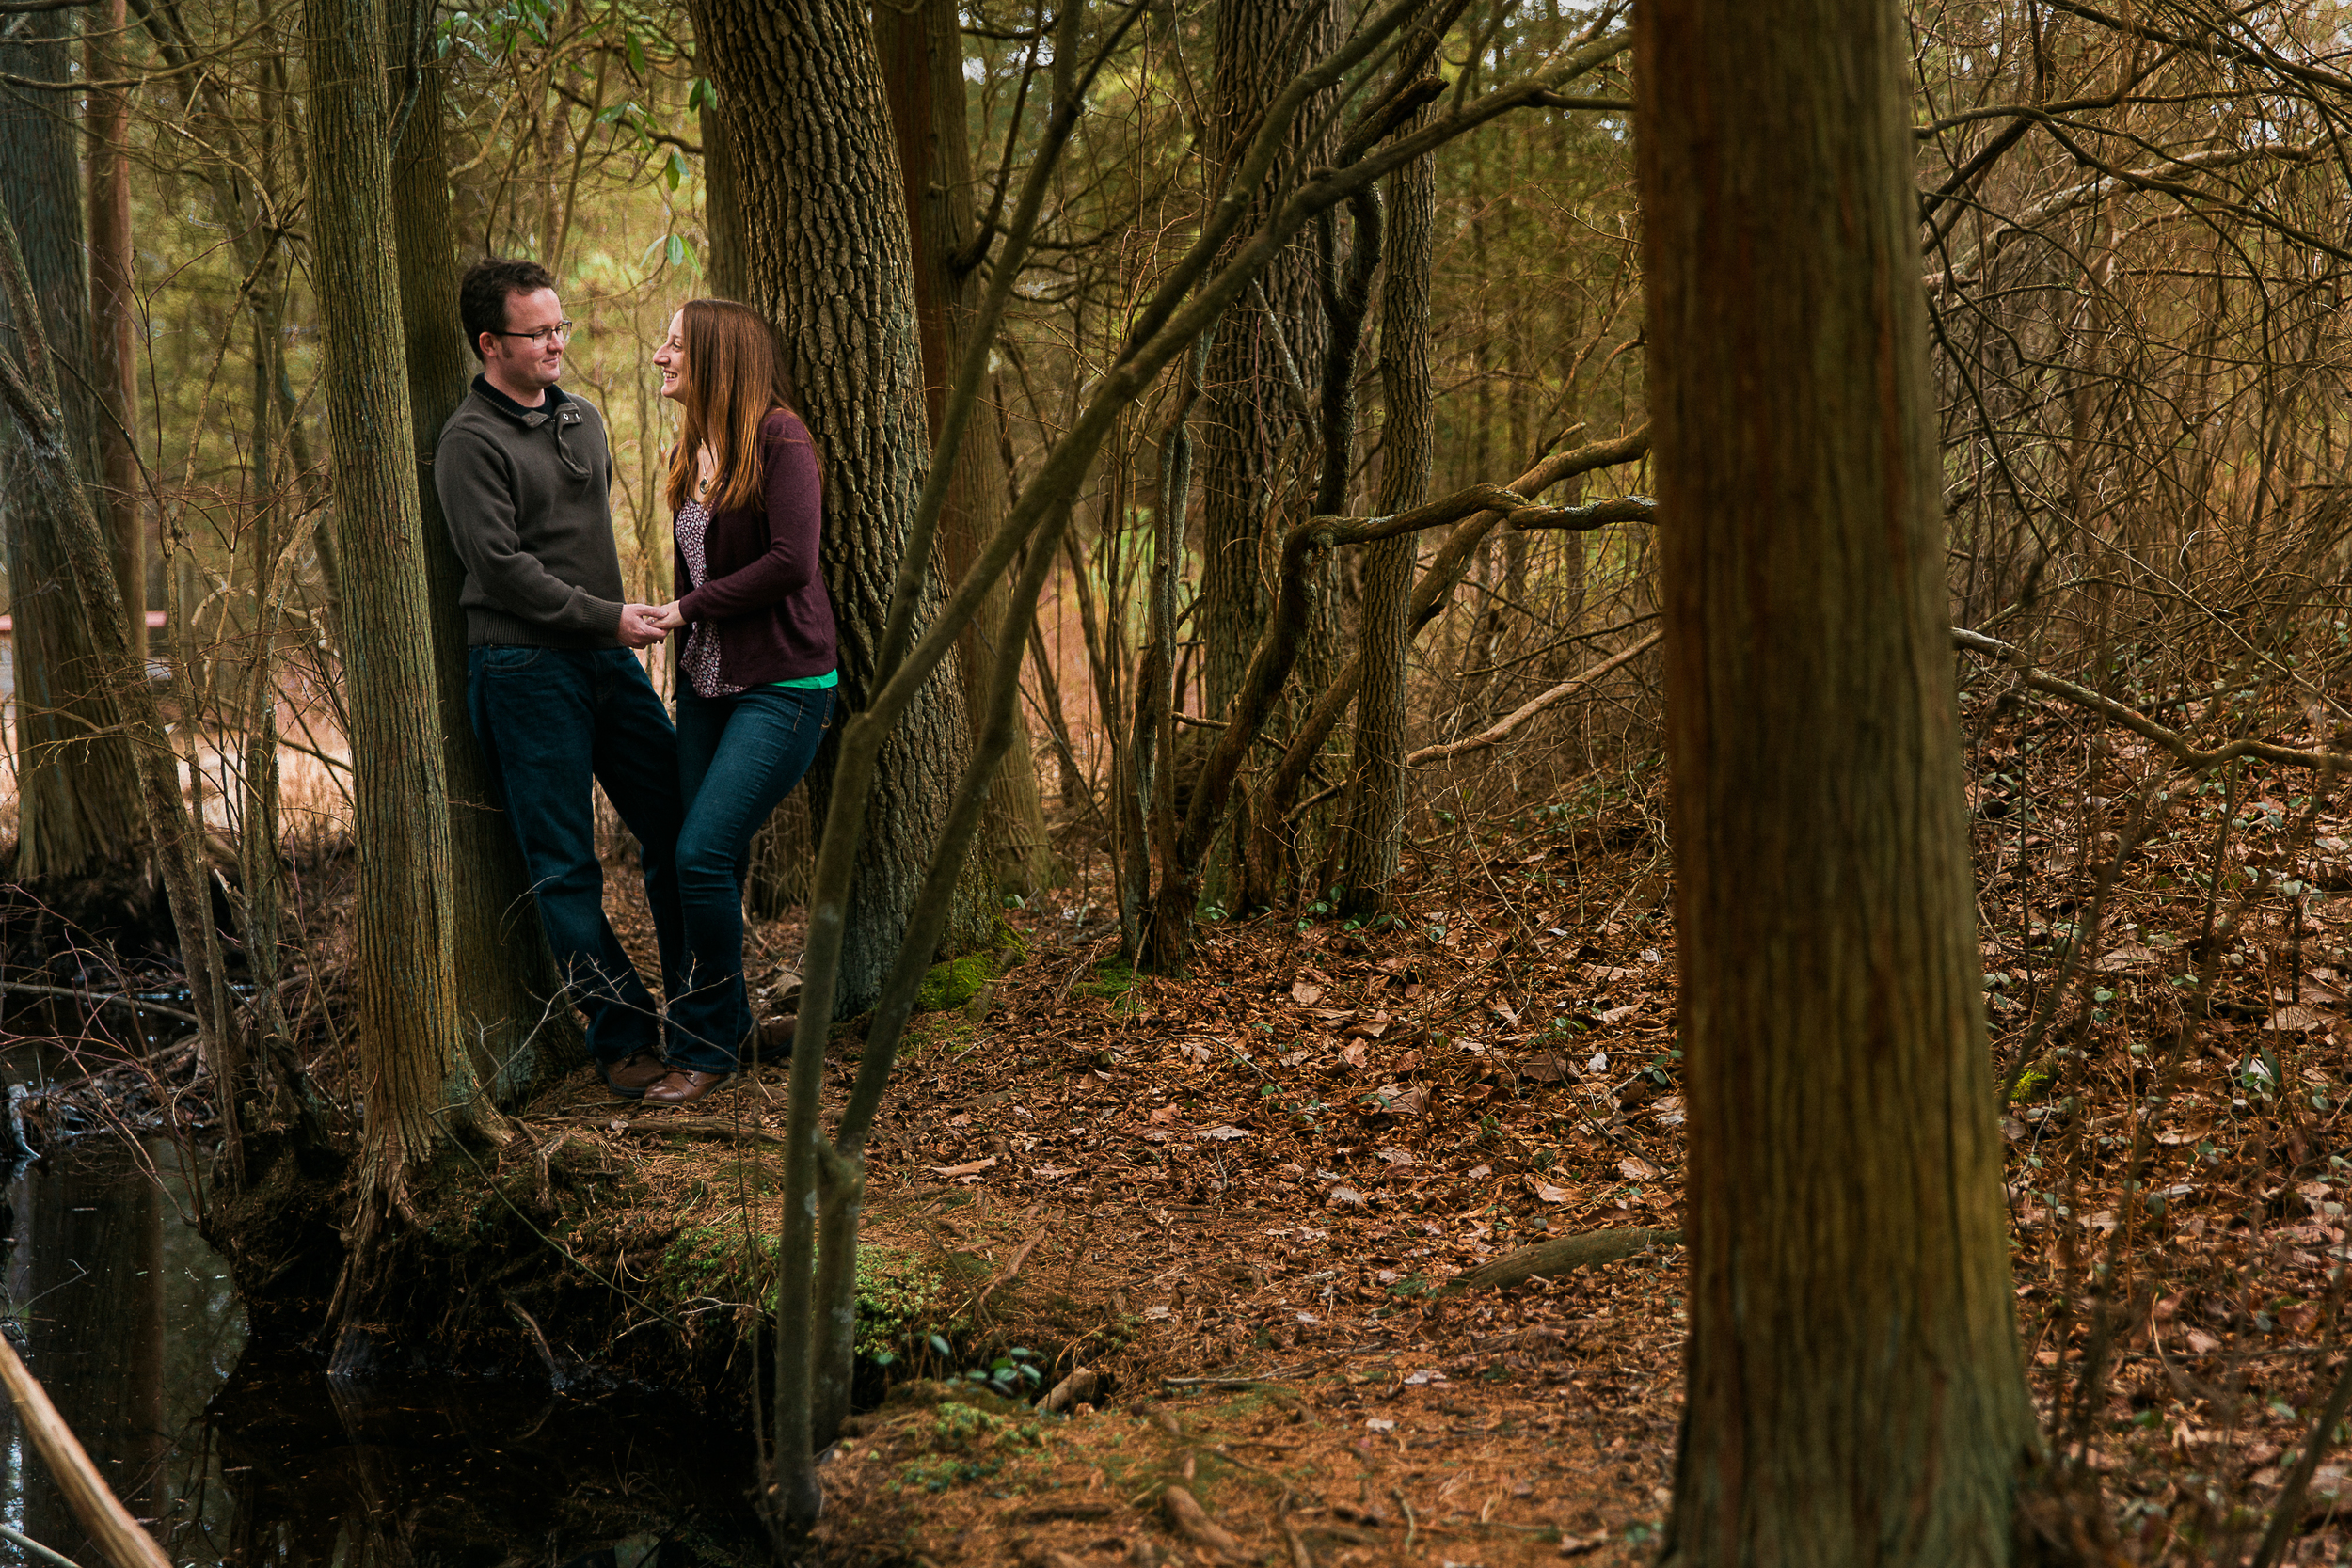 Samantha and Joe Engagement WRH Photography Depford NJ-3.jpg